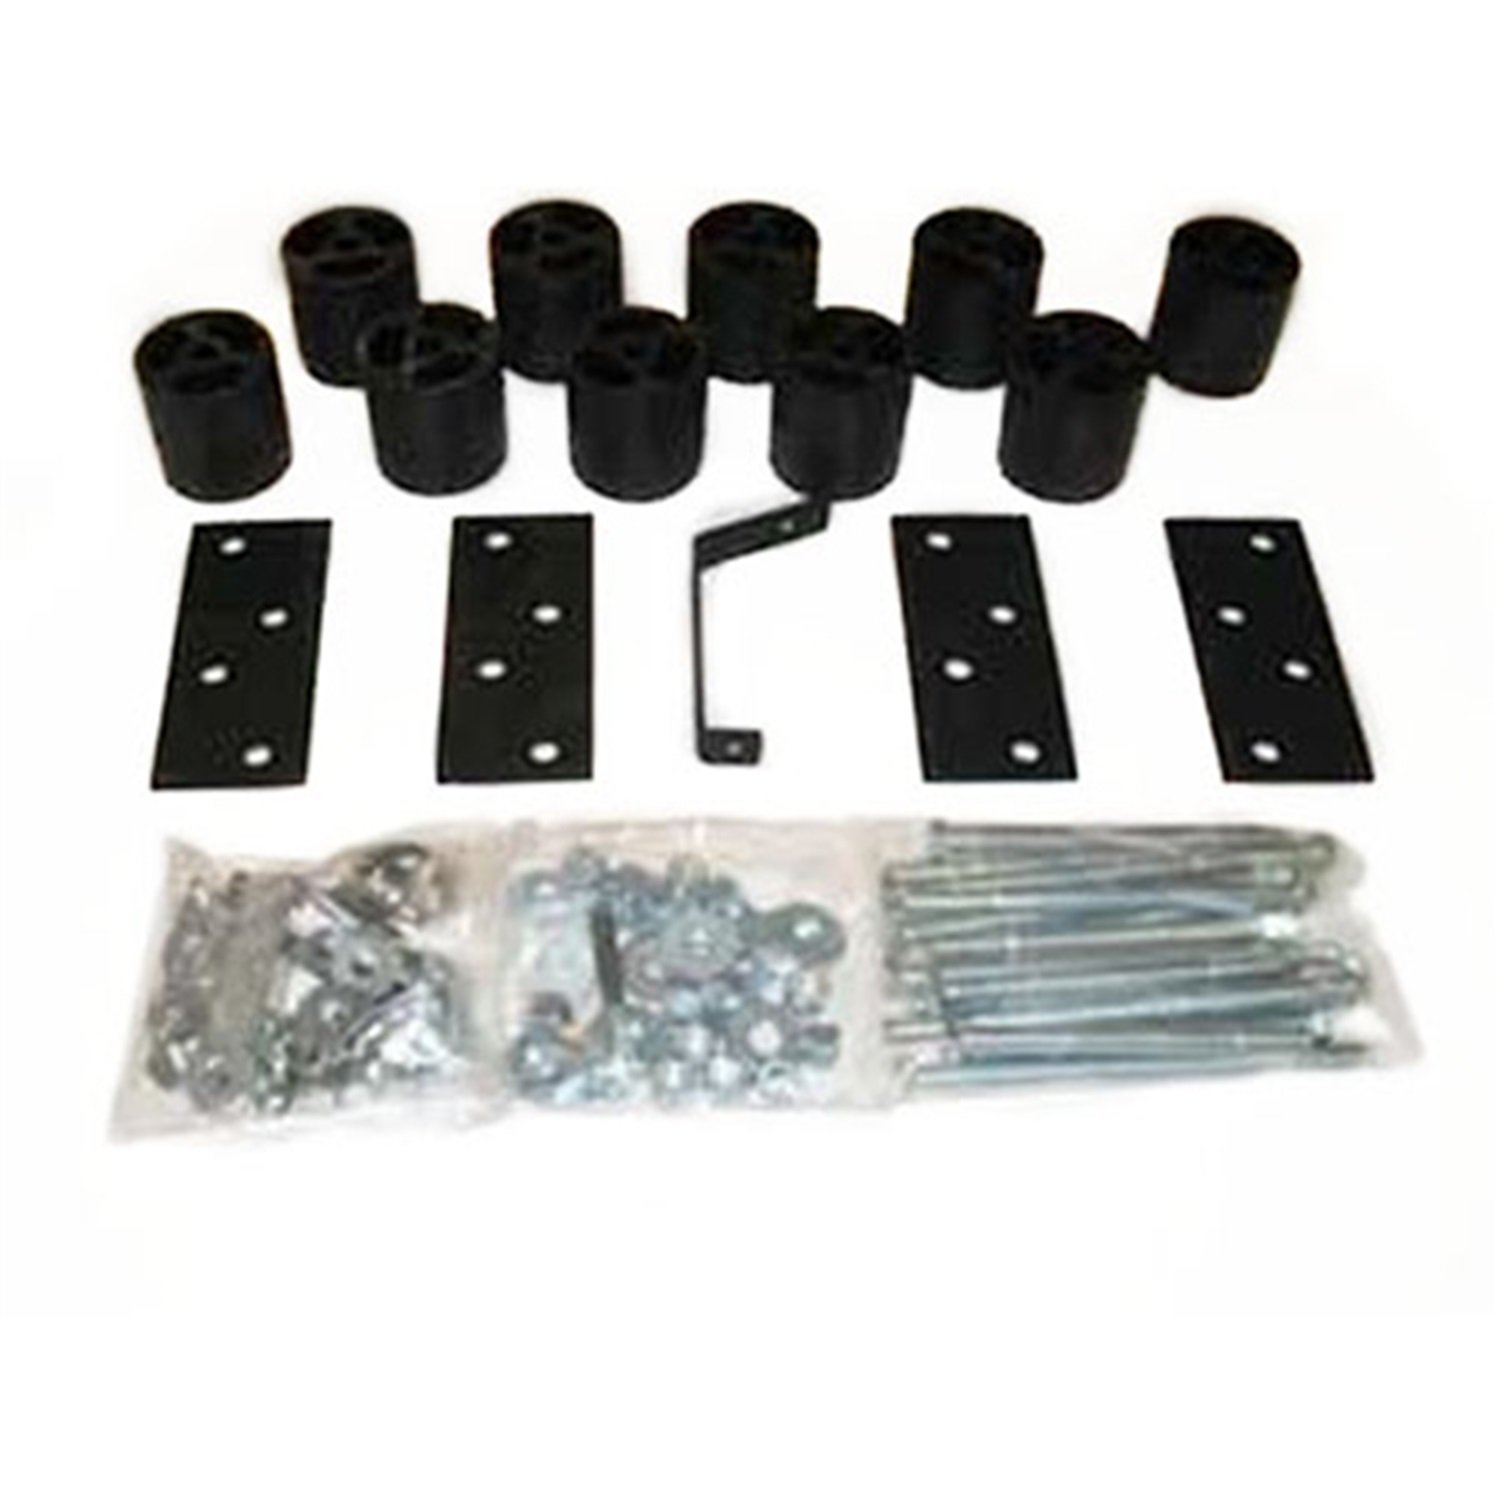 Made in America Performance Accessories fits 1990 to 1994 3 Body Lift Kit Ford Explorer//Mazda Navajo PA793 Manual Trans Requires 3700